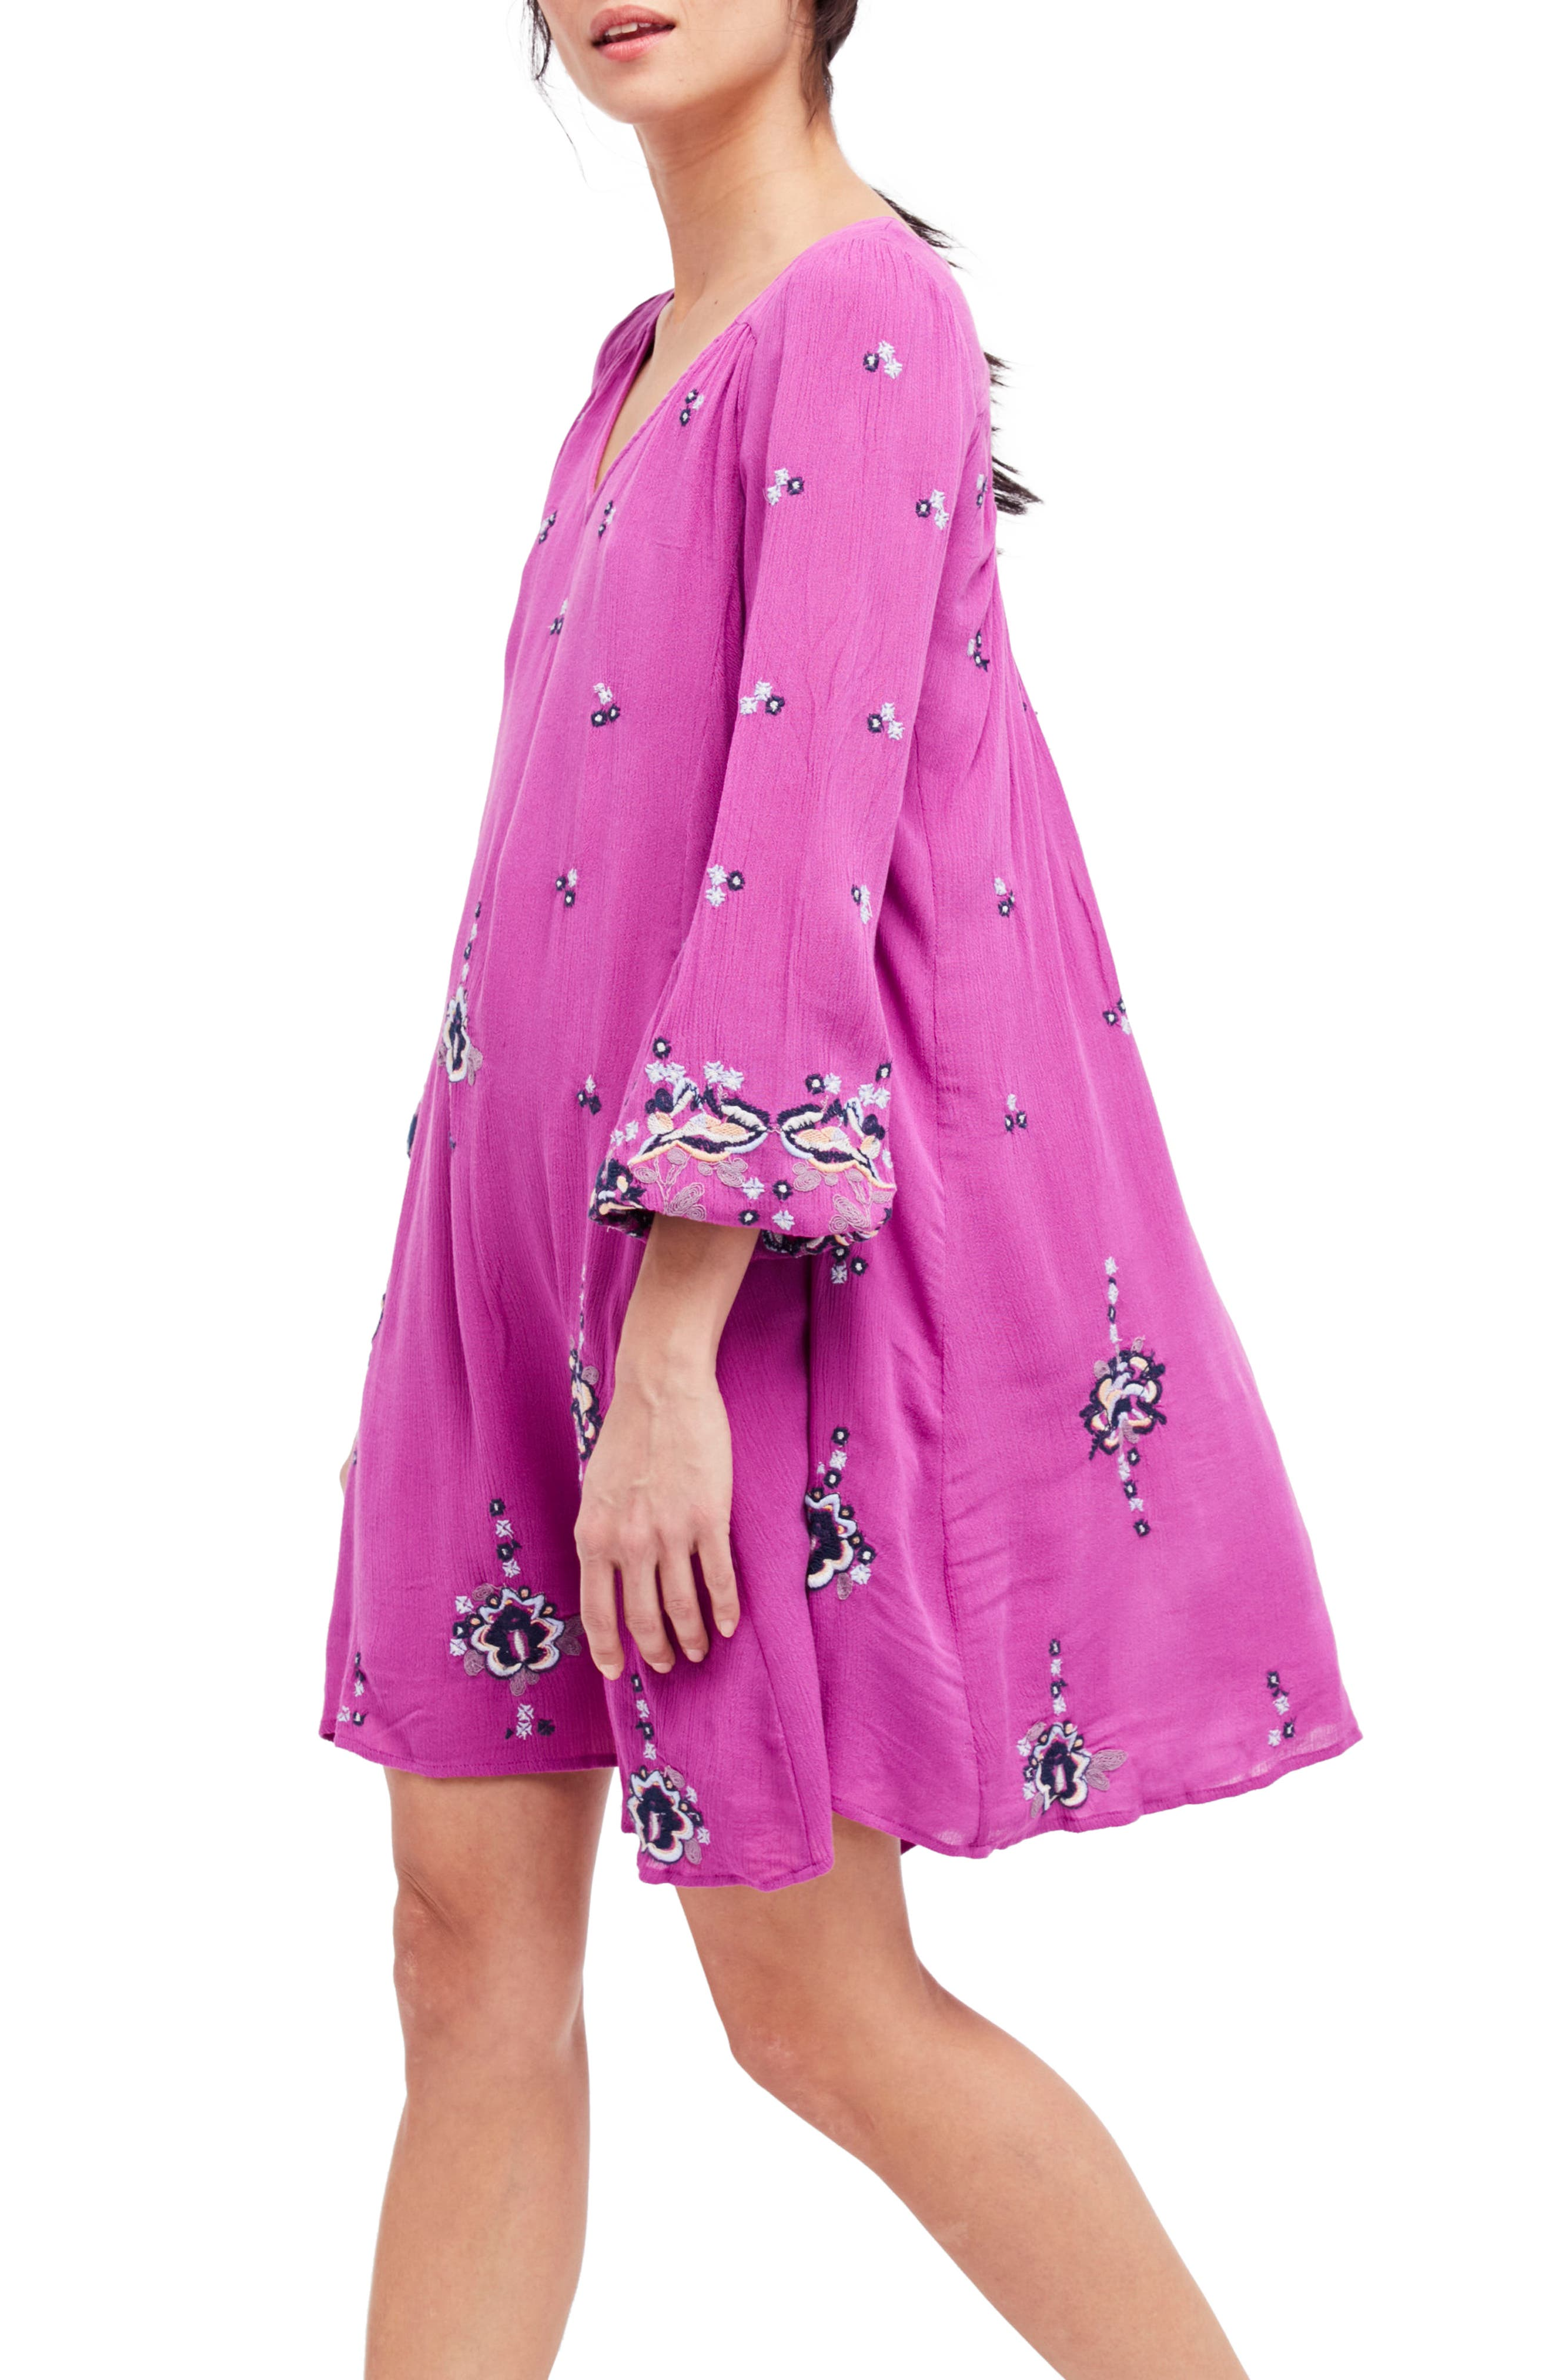 Alternate Image 1 Selected - Free People Embroidered Minidress